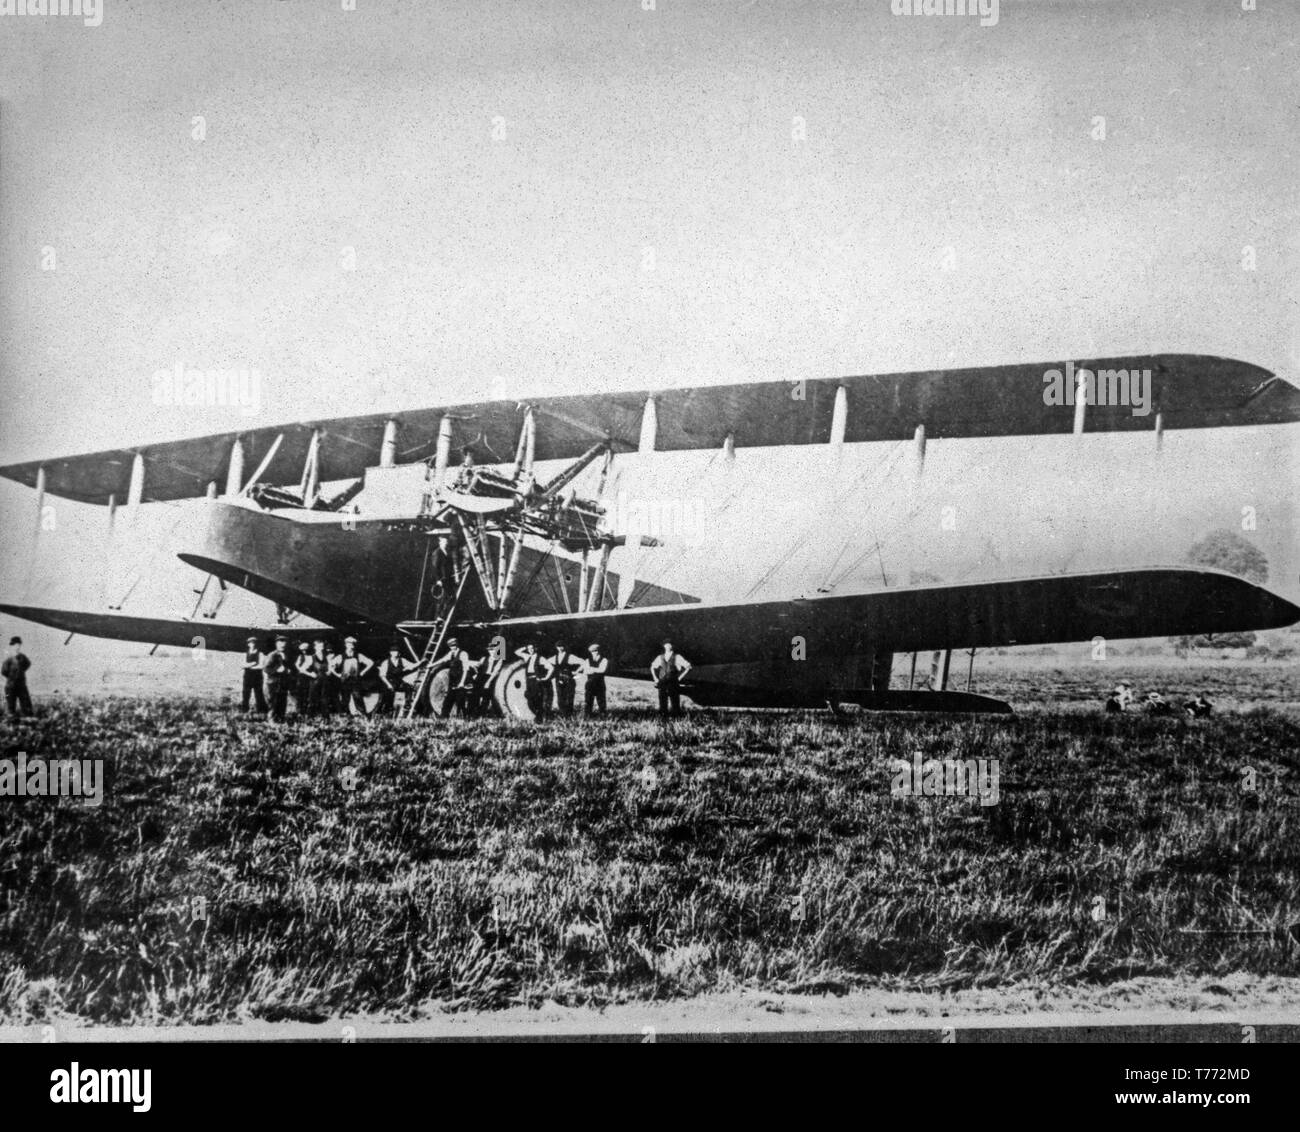 A British Royal Air Force, Royal Flying Corps, Handley Page V/1500 bomber aircraft of World War One. Photograph shows the aircraft on the ground with many people around it base. Contemporary First World war black and white photograph taken in 1918. - Stock Image